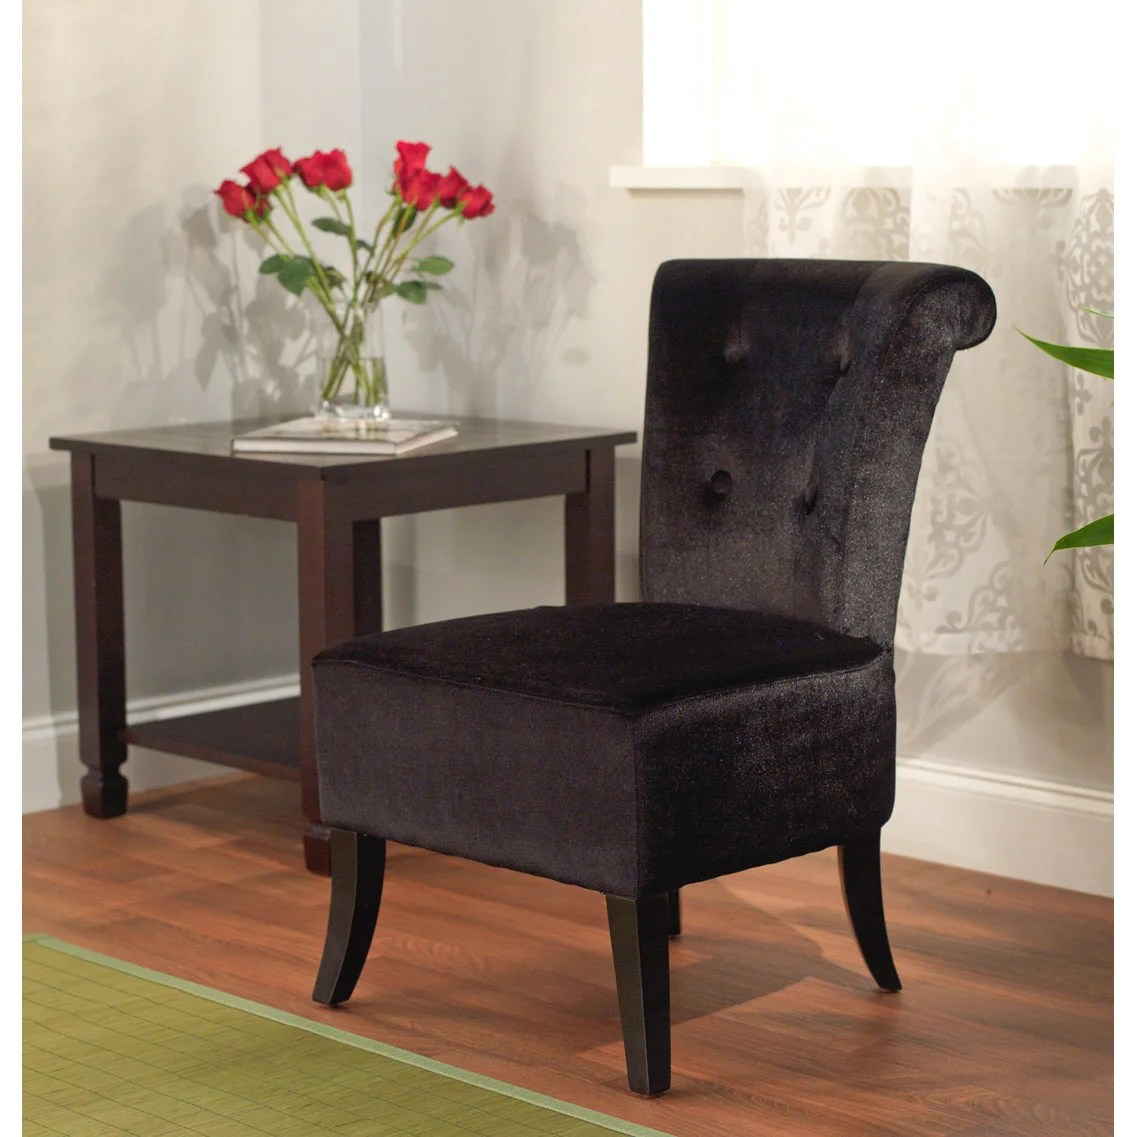 Overstock Chairs Simple Living Anna Black Velvet Accent Chair Free